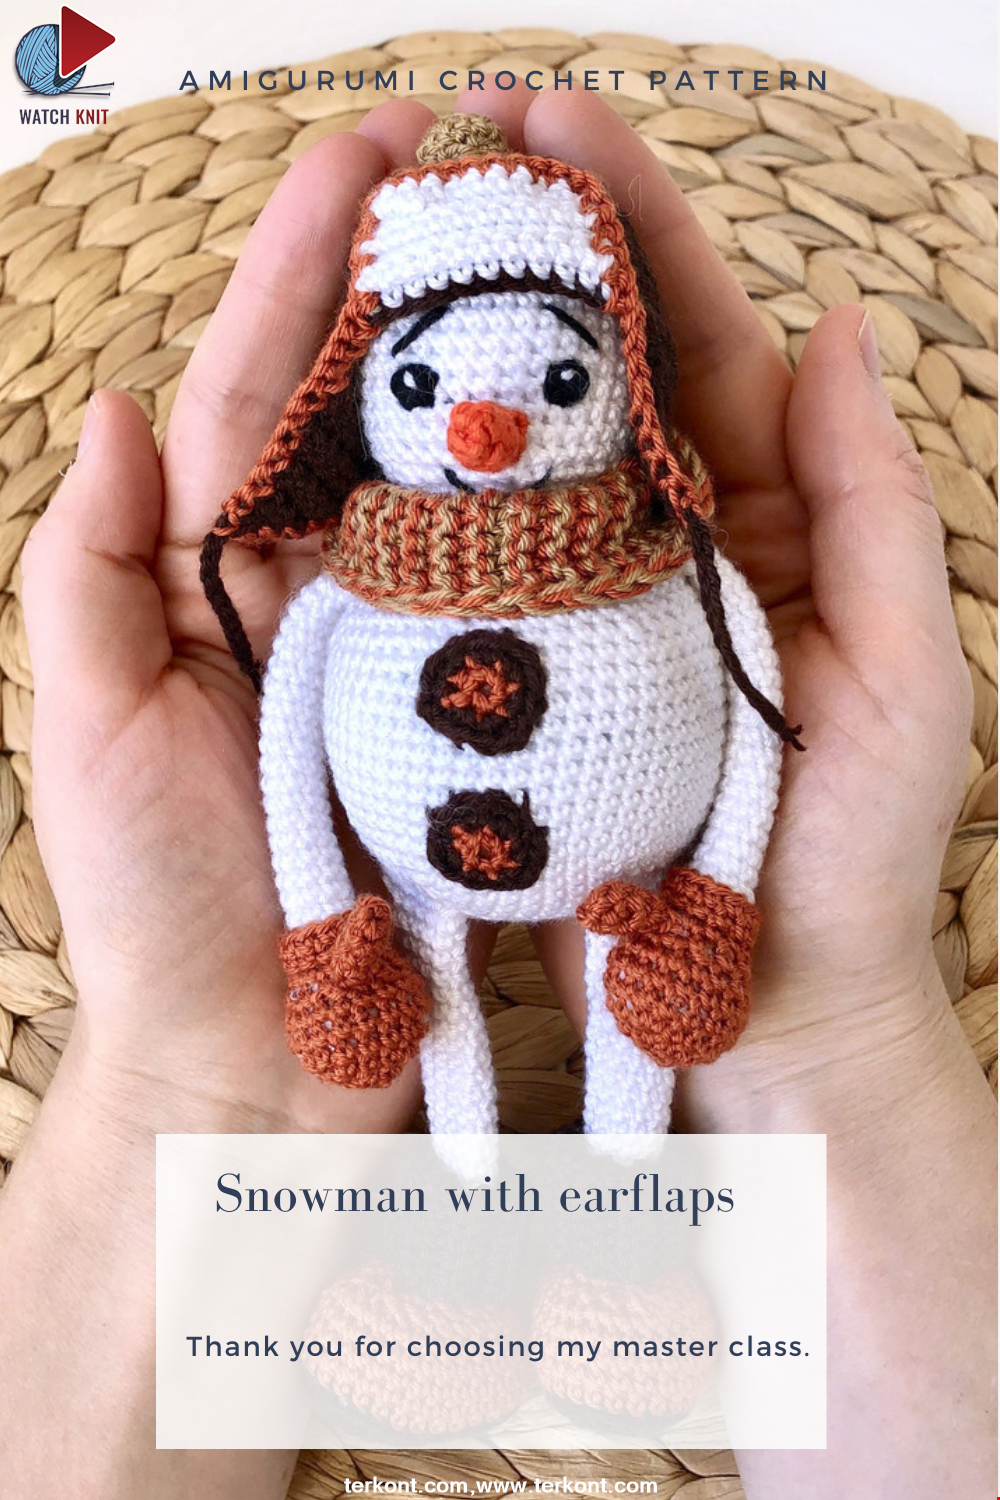 Snowman in a hat with earflaps